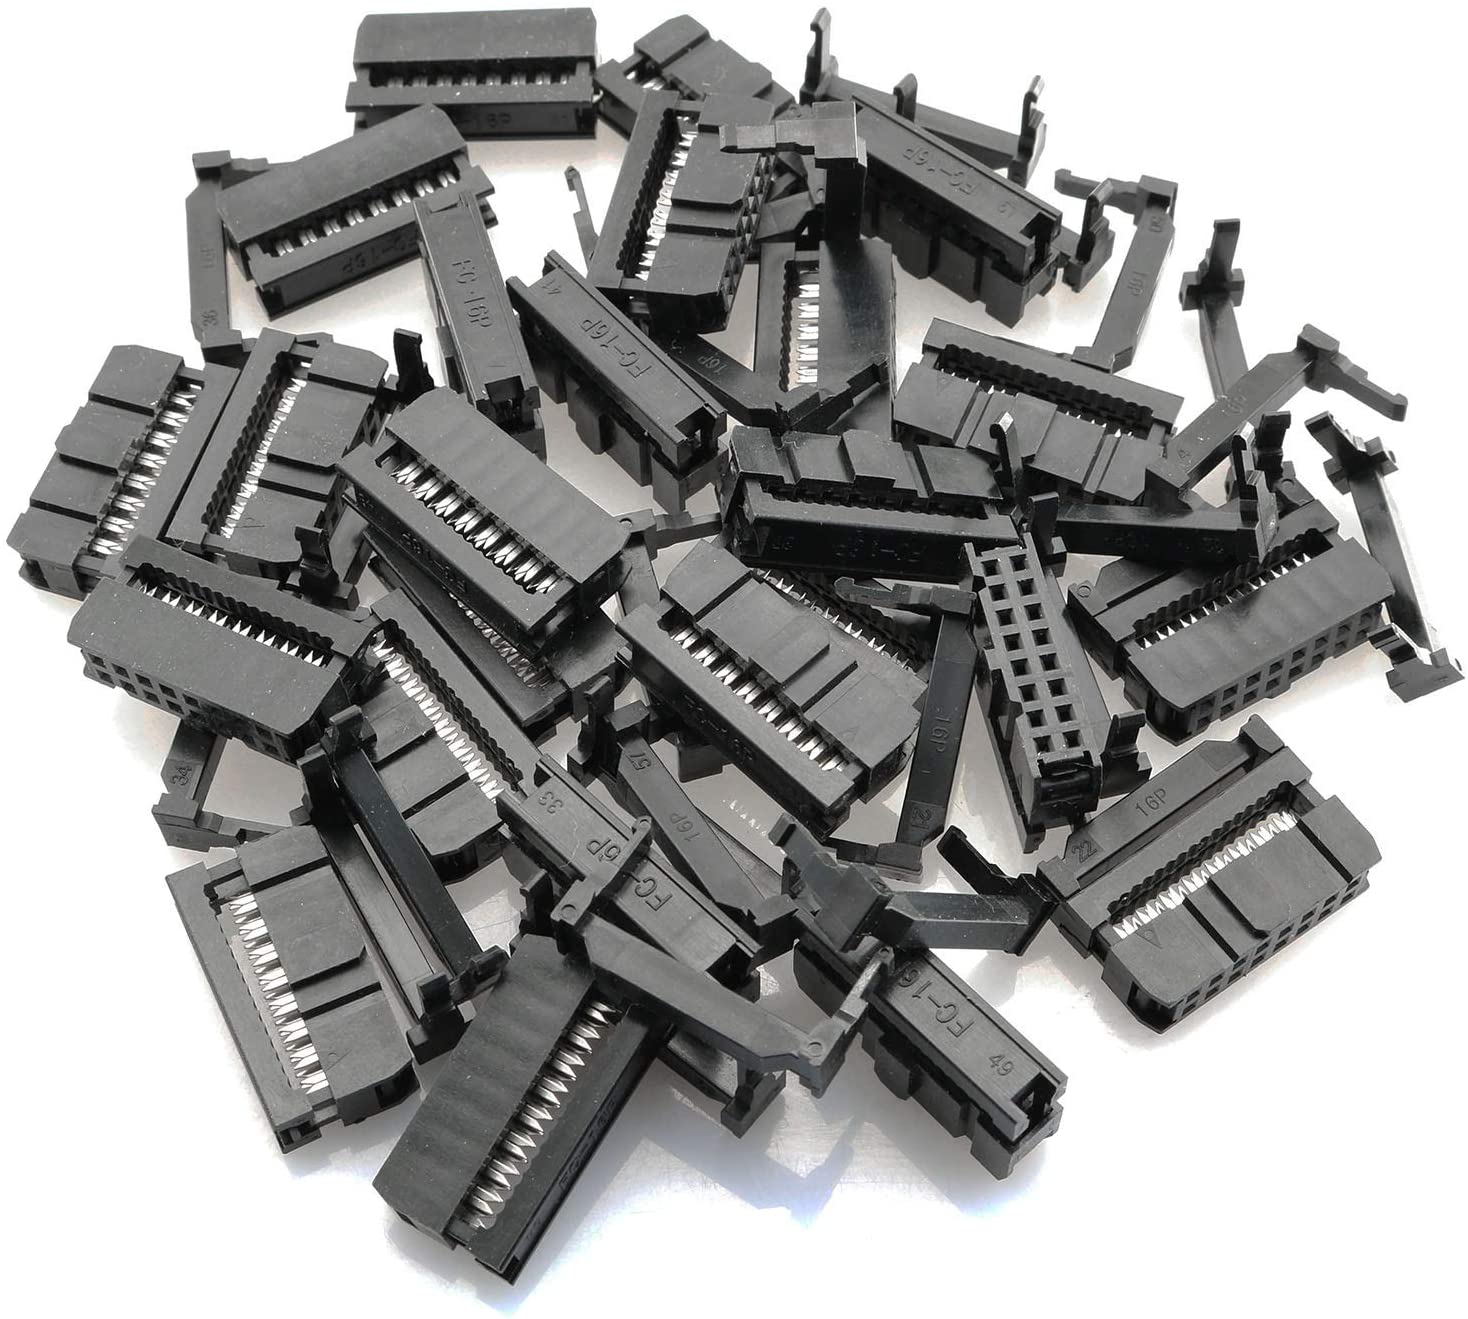 100Pcs 2.54mm Pitch 2x8 Pin 16 Pin IDC FC Female Header Cable Socket Connector